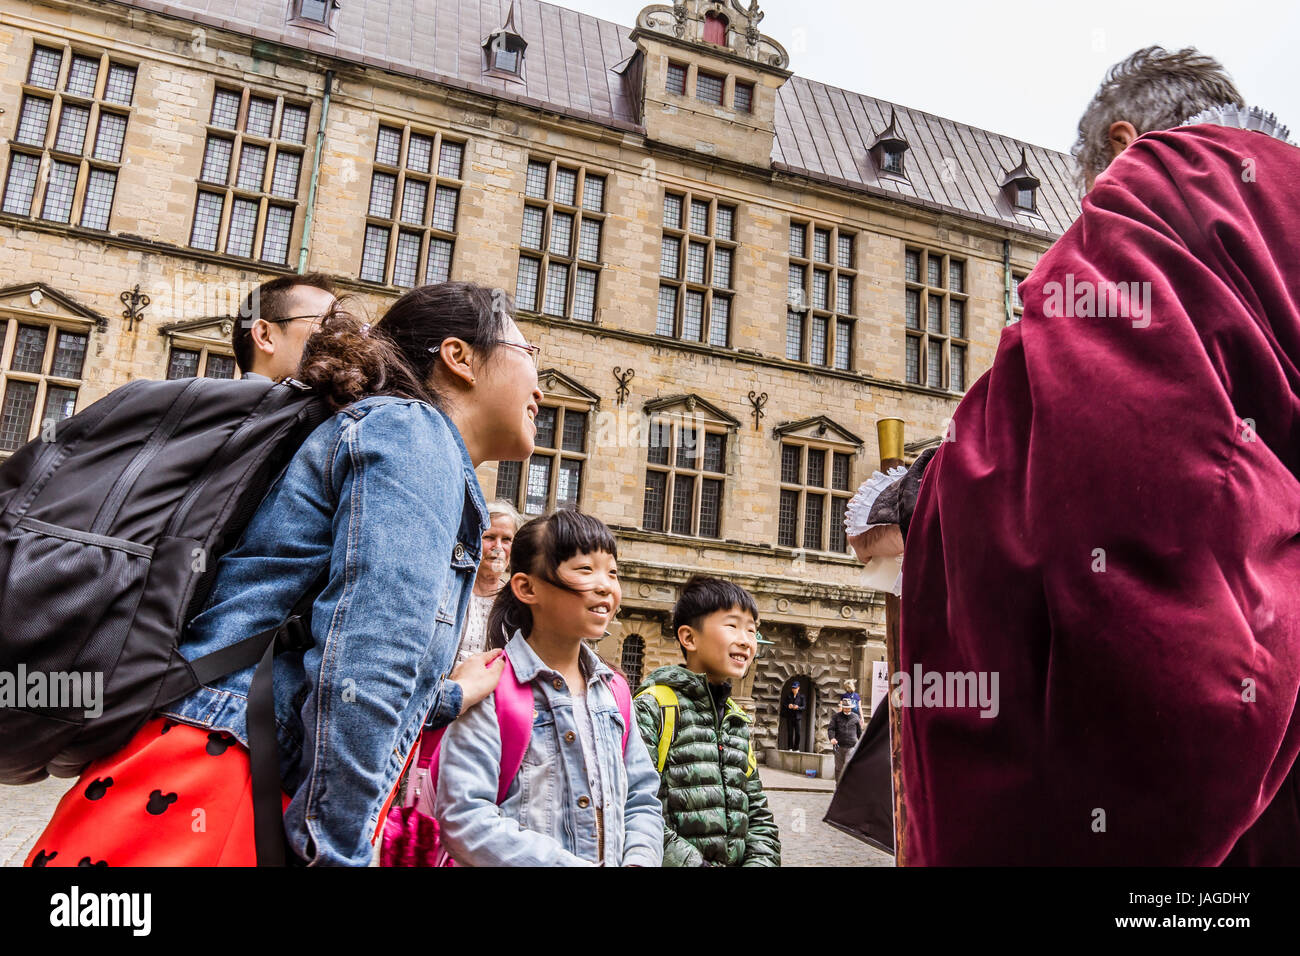 Asian family at Kronborg castle talking to an actor, Elsinore, Denmark, May 30, 2017 Stock Photo